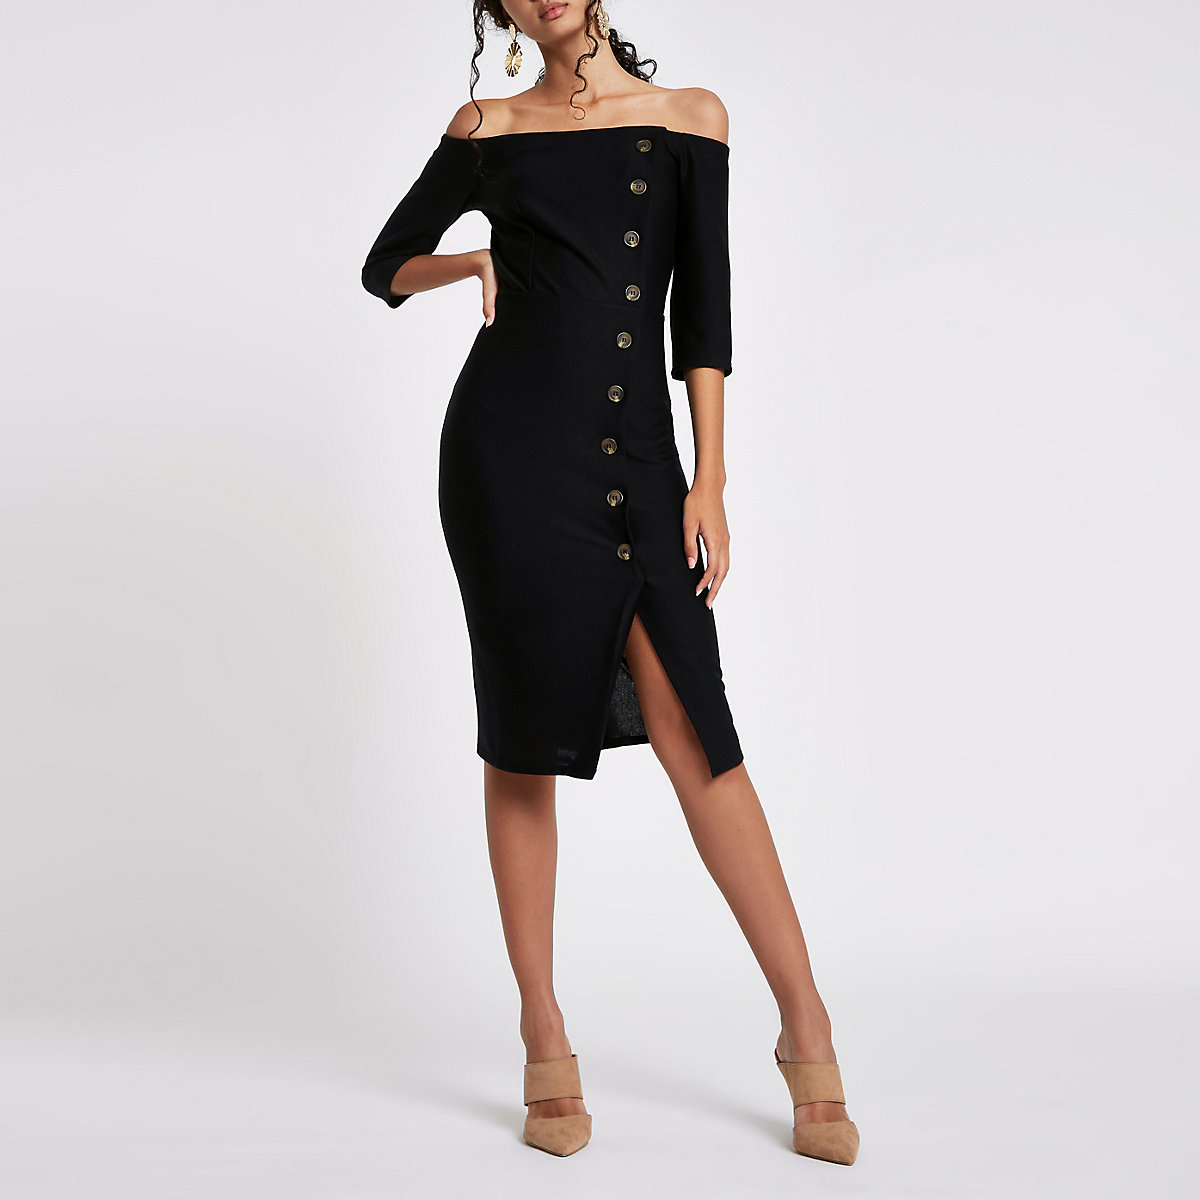 65fba545f88 Black bardot button front bodycon midi dress - Bodycon Dresses - Dresses -  women